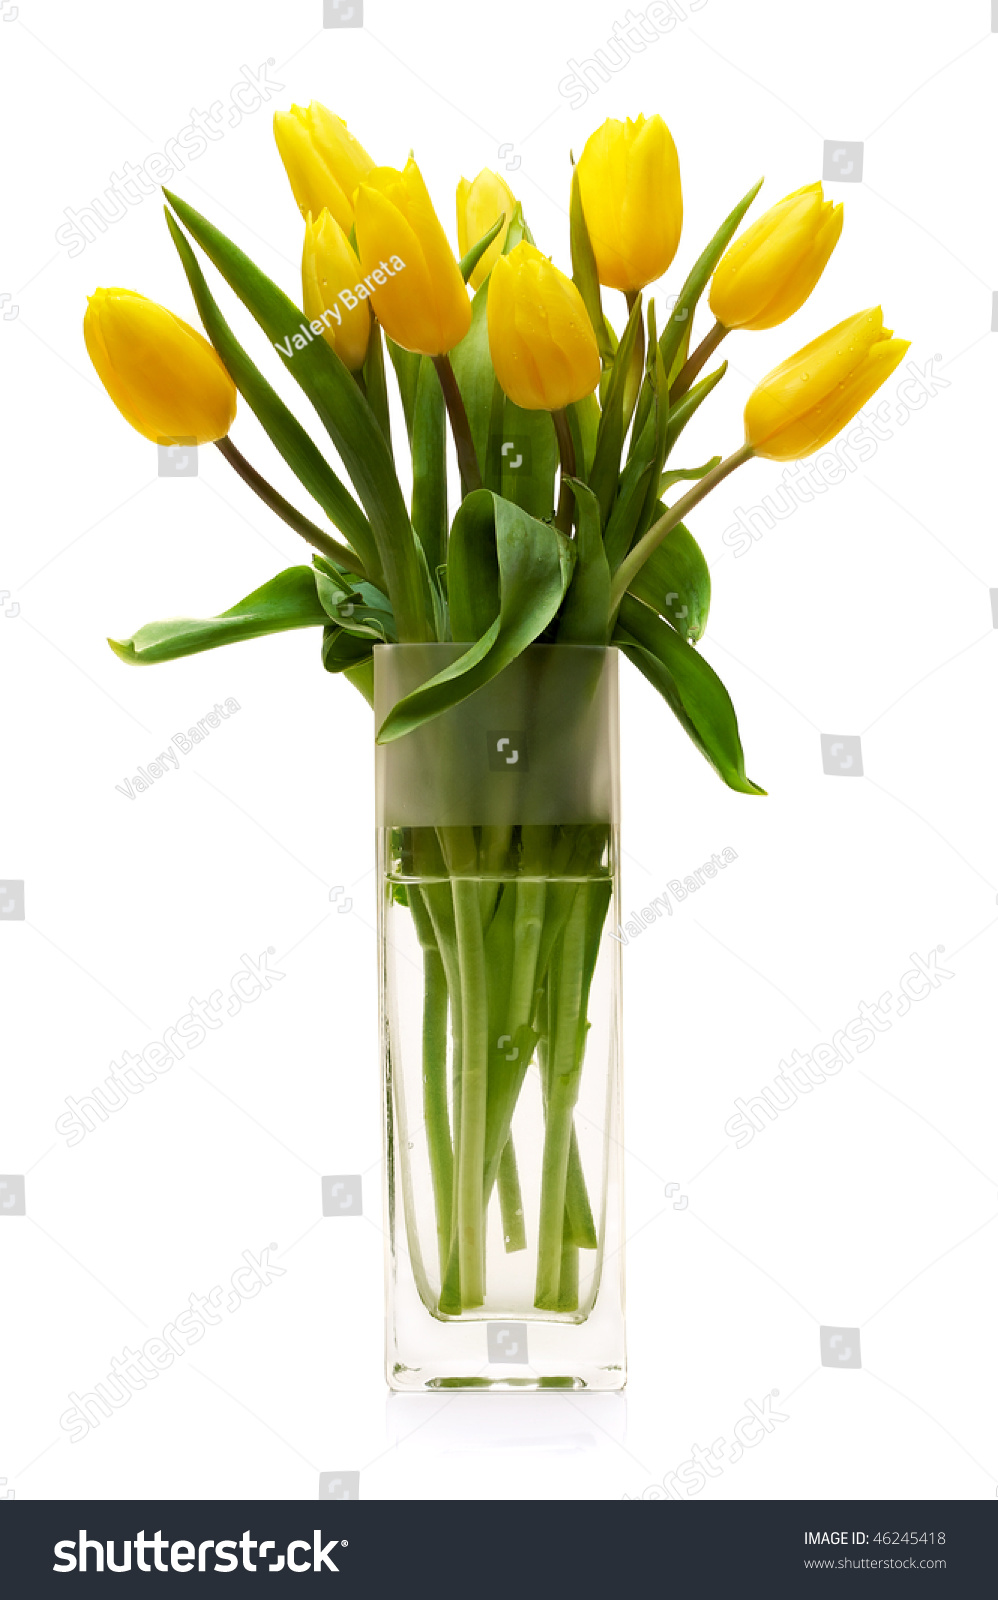 Bouquet Of Yellow Tulips In A Glass Vase On A White Background Stock Photo 46245418 Shutterstock